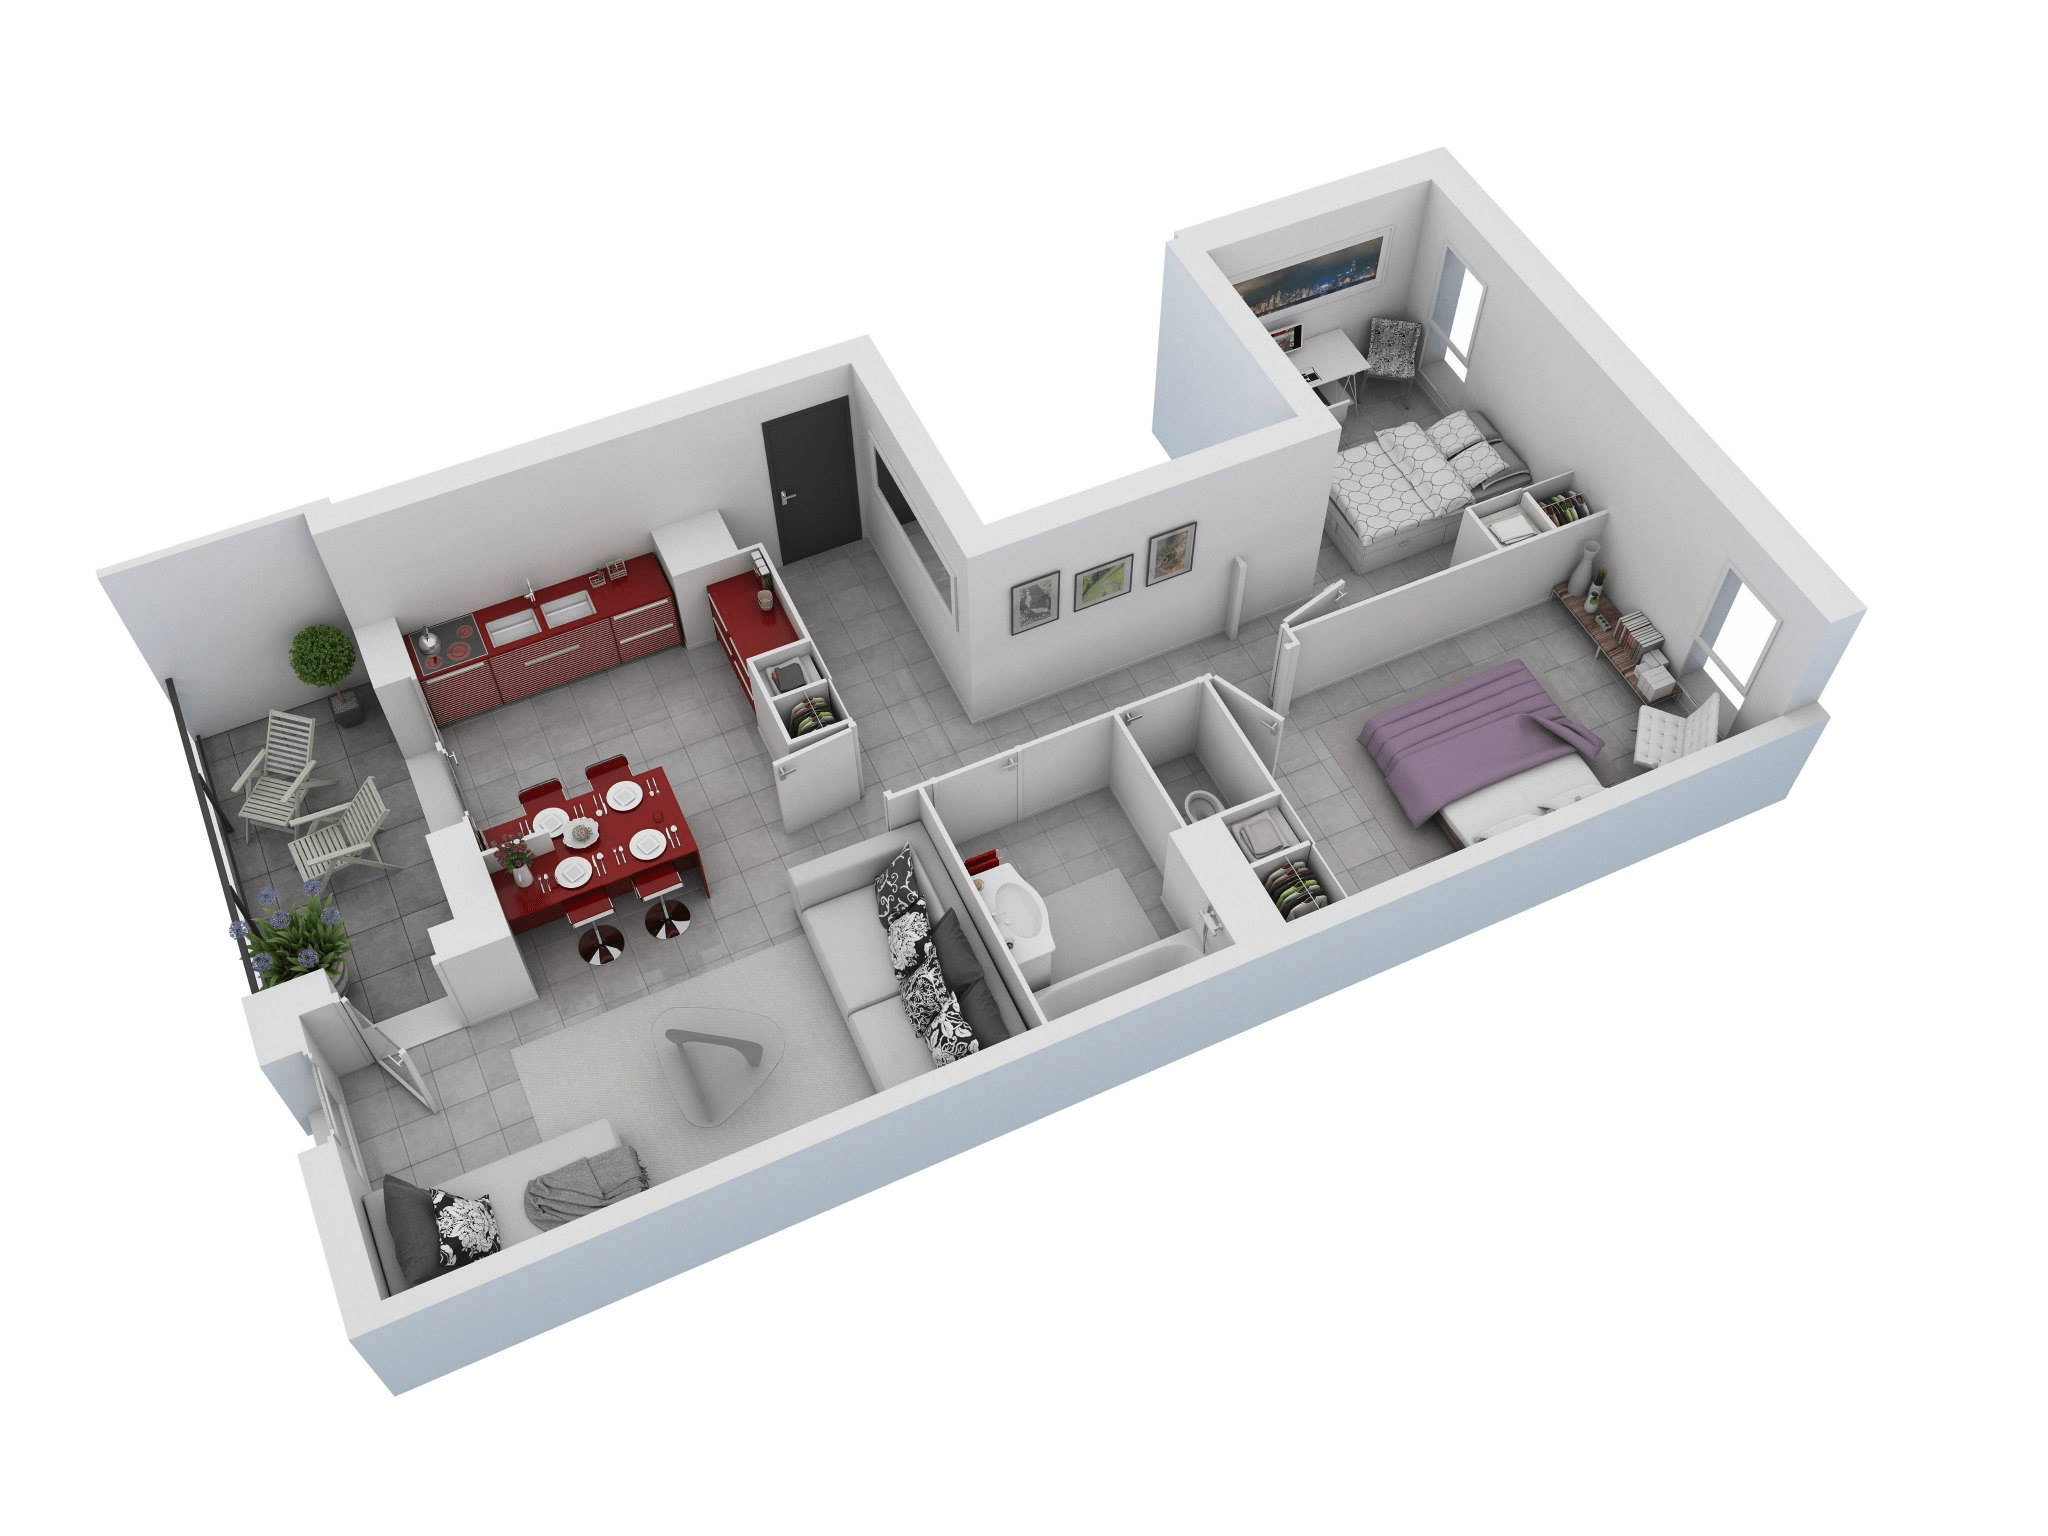 Two Bedroom Hall Kitchen Apartment Layout Plans 3D (Image 16 of 17)